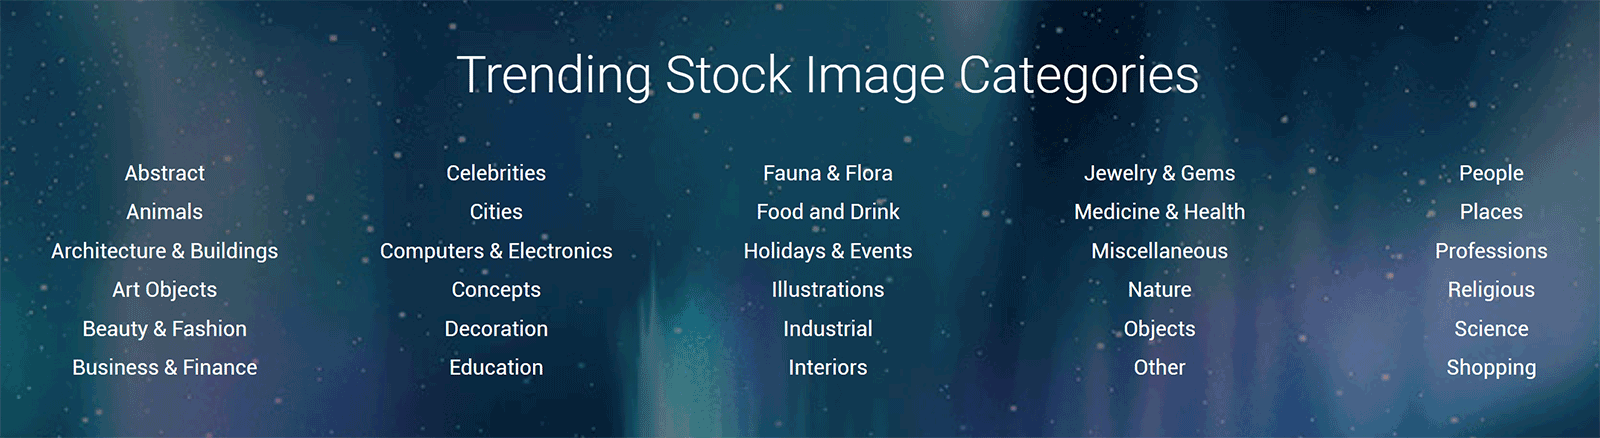 Stock Image Categories